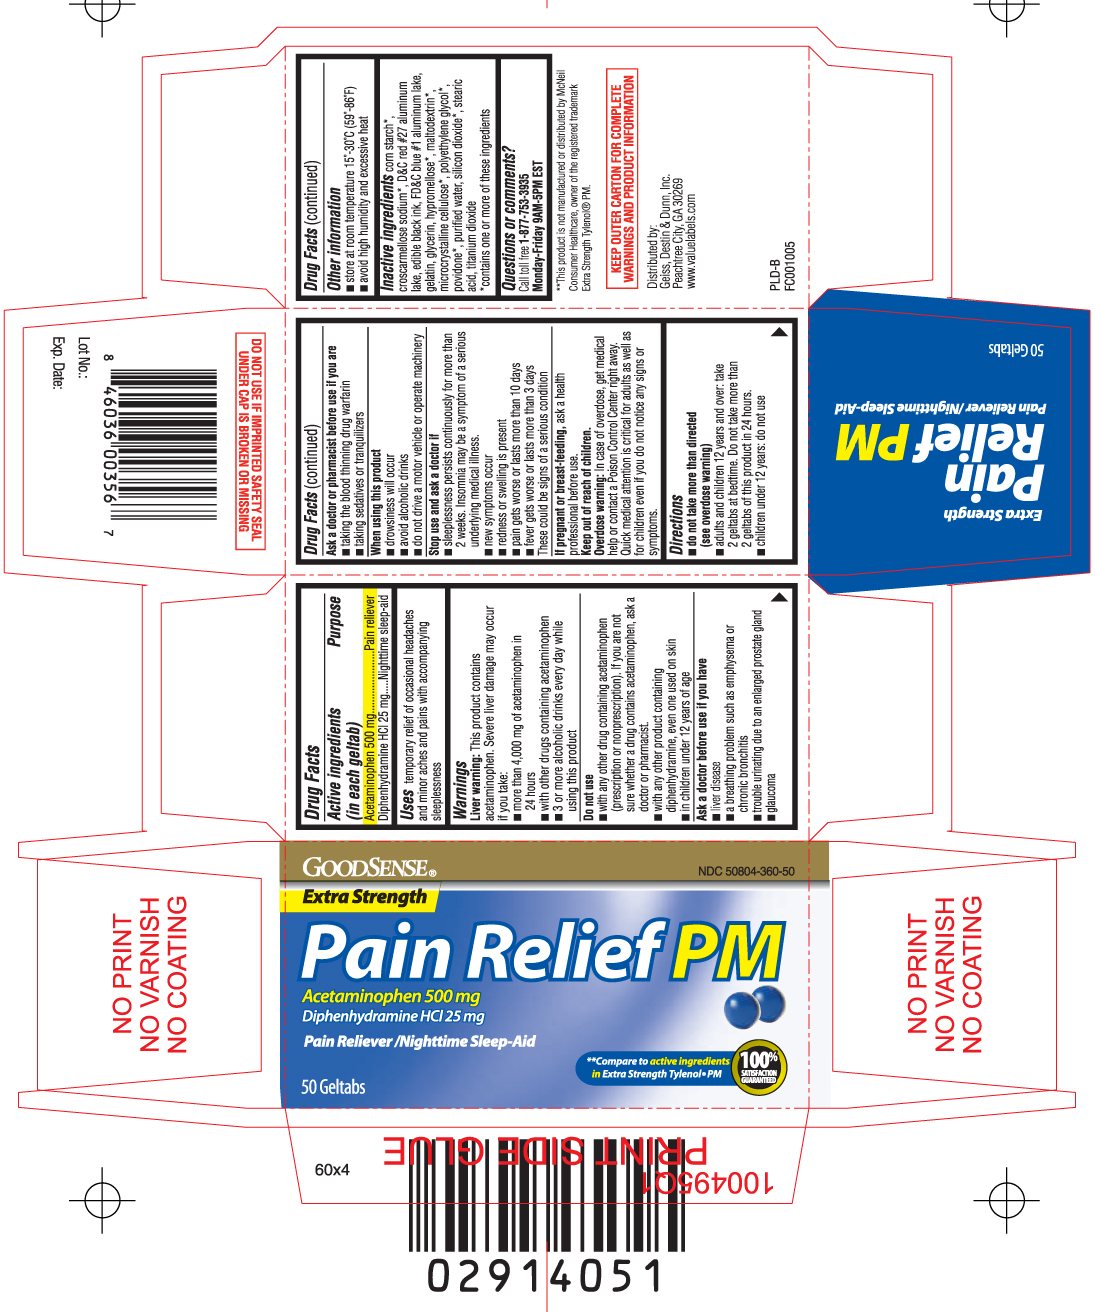 Pain Relief Pm Extra Strength (Acetaminophen, Diphenhydramine Hcl) Tablet, Coated [Geiss, Destin & Dunn, Inc (Goodsense)]